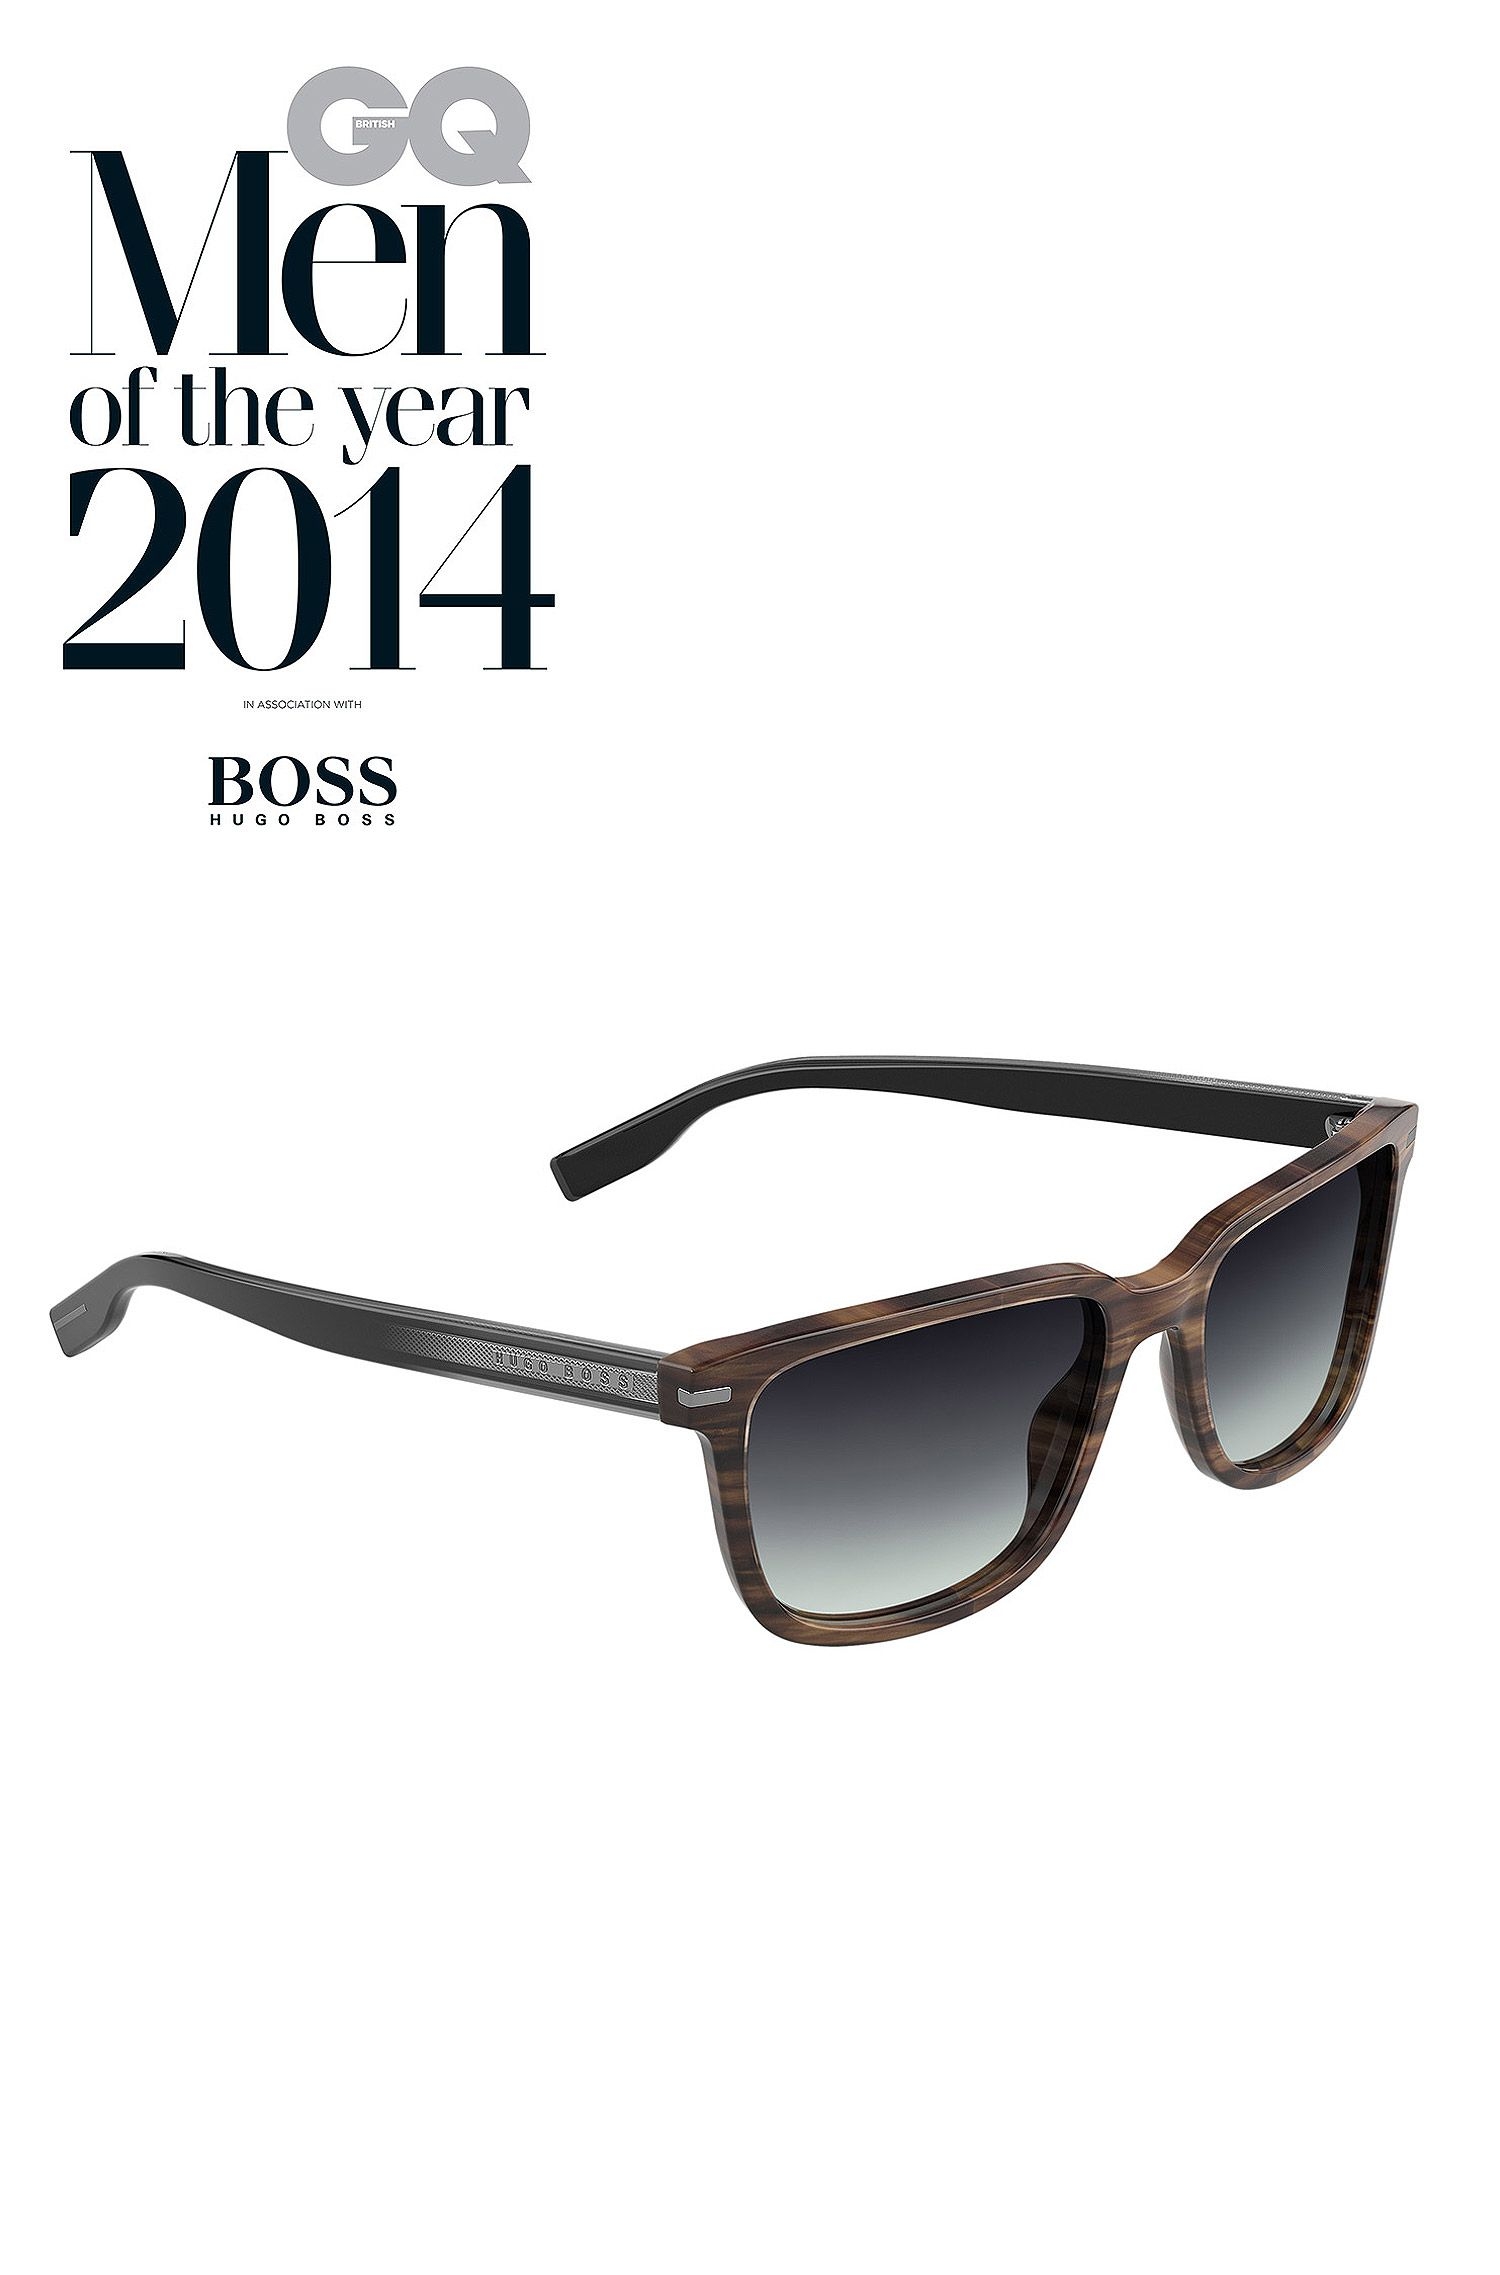 Zonnebril 'BOSS 0623/S', GQ Man of the Year Style